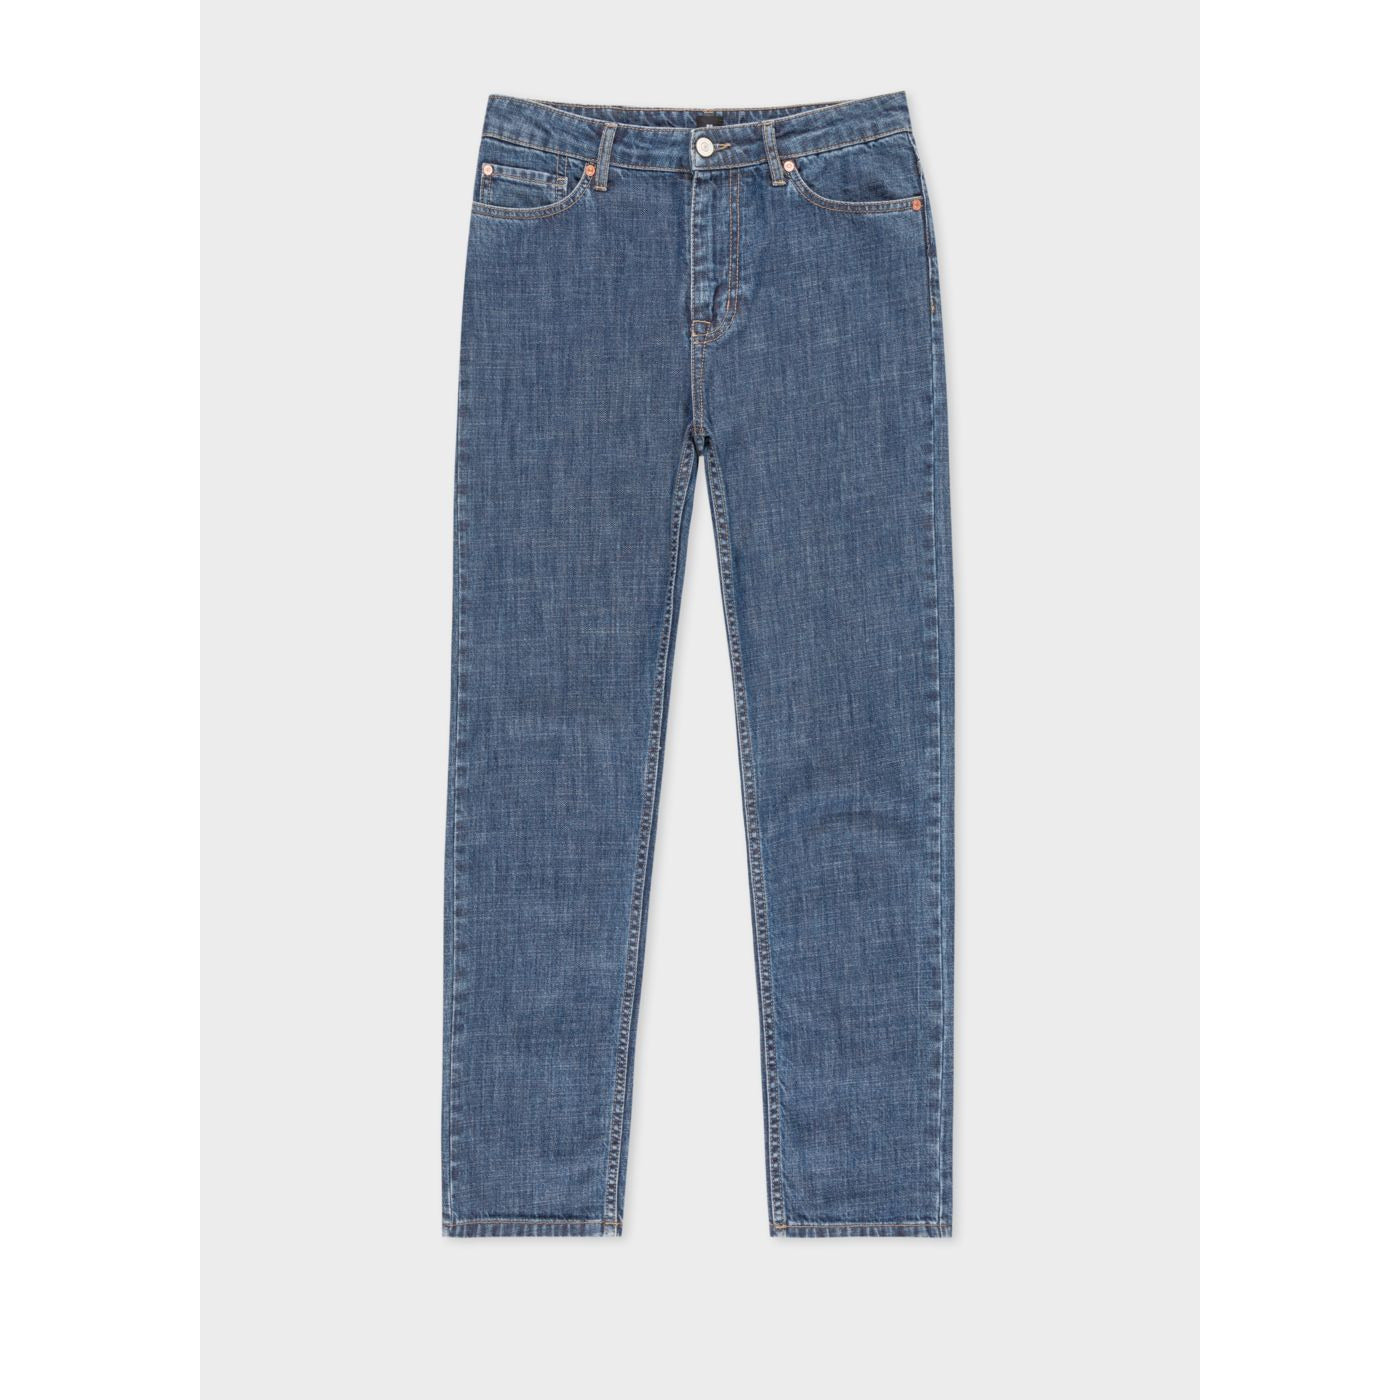 PS PAULSMITH WASHED DENIM BOYFRIEND-FIT JEAN